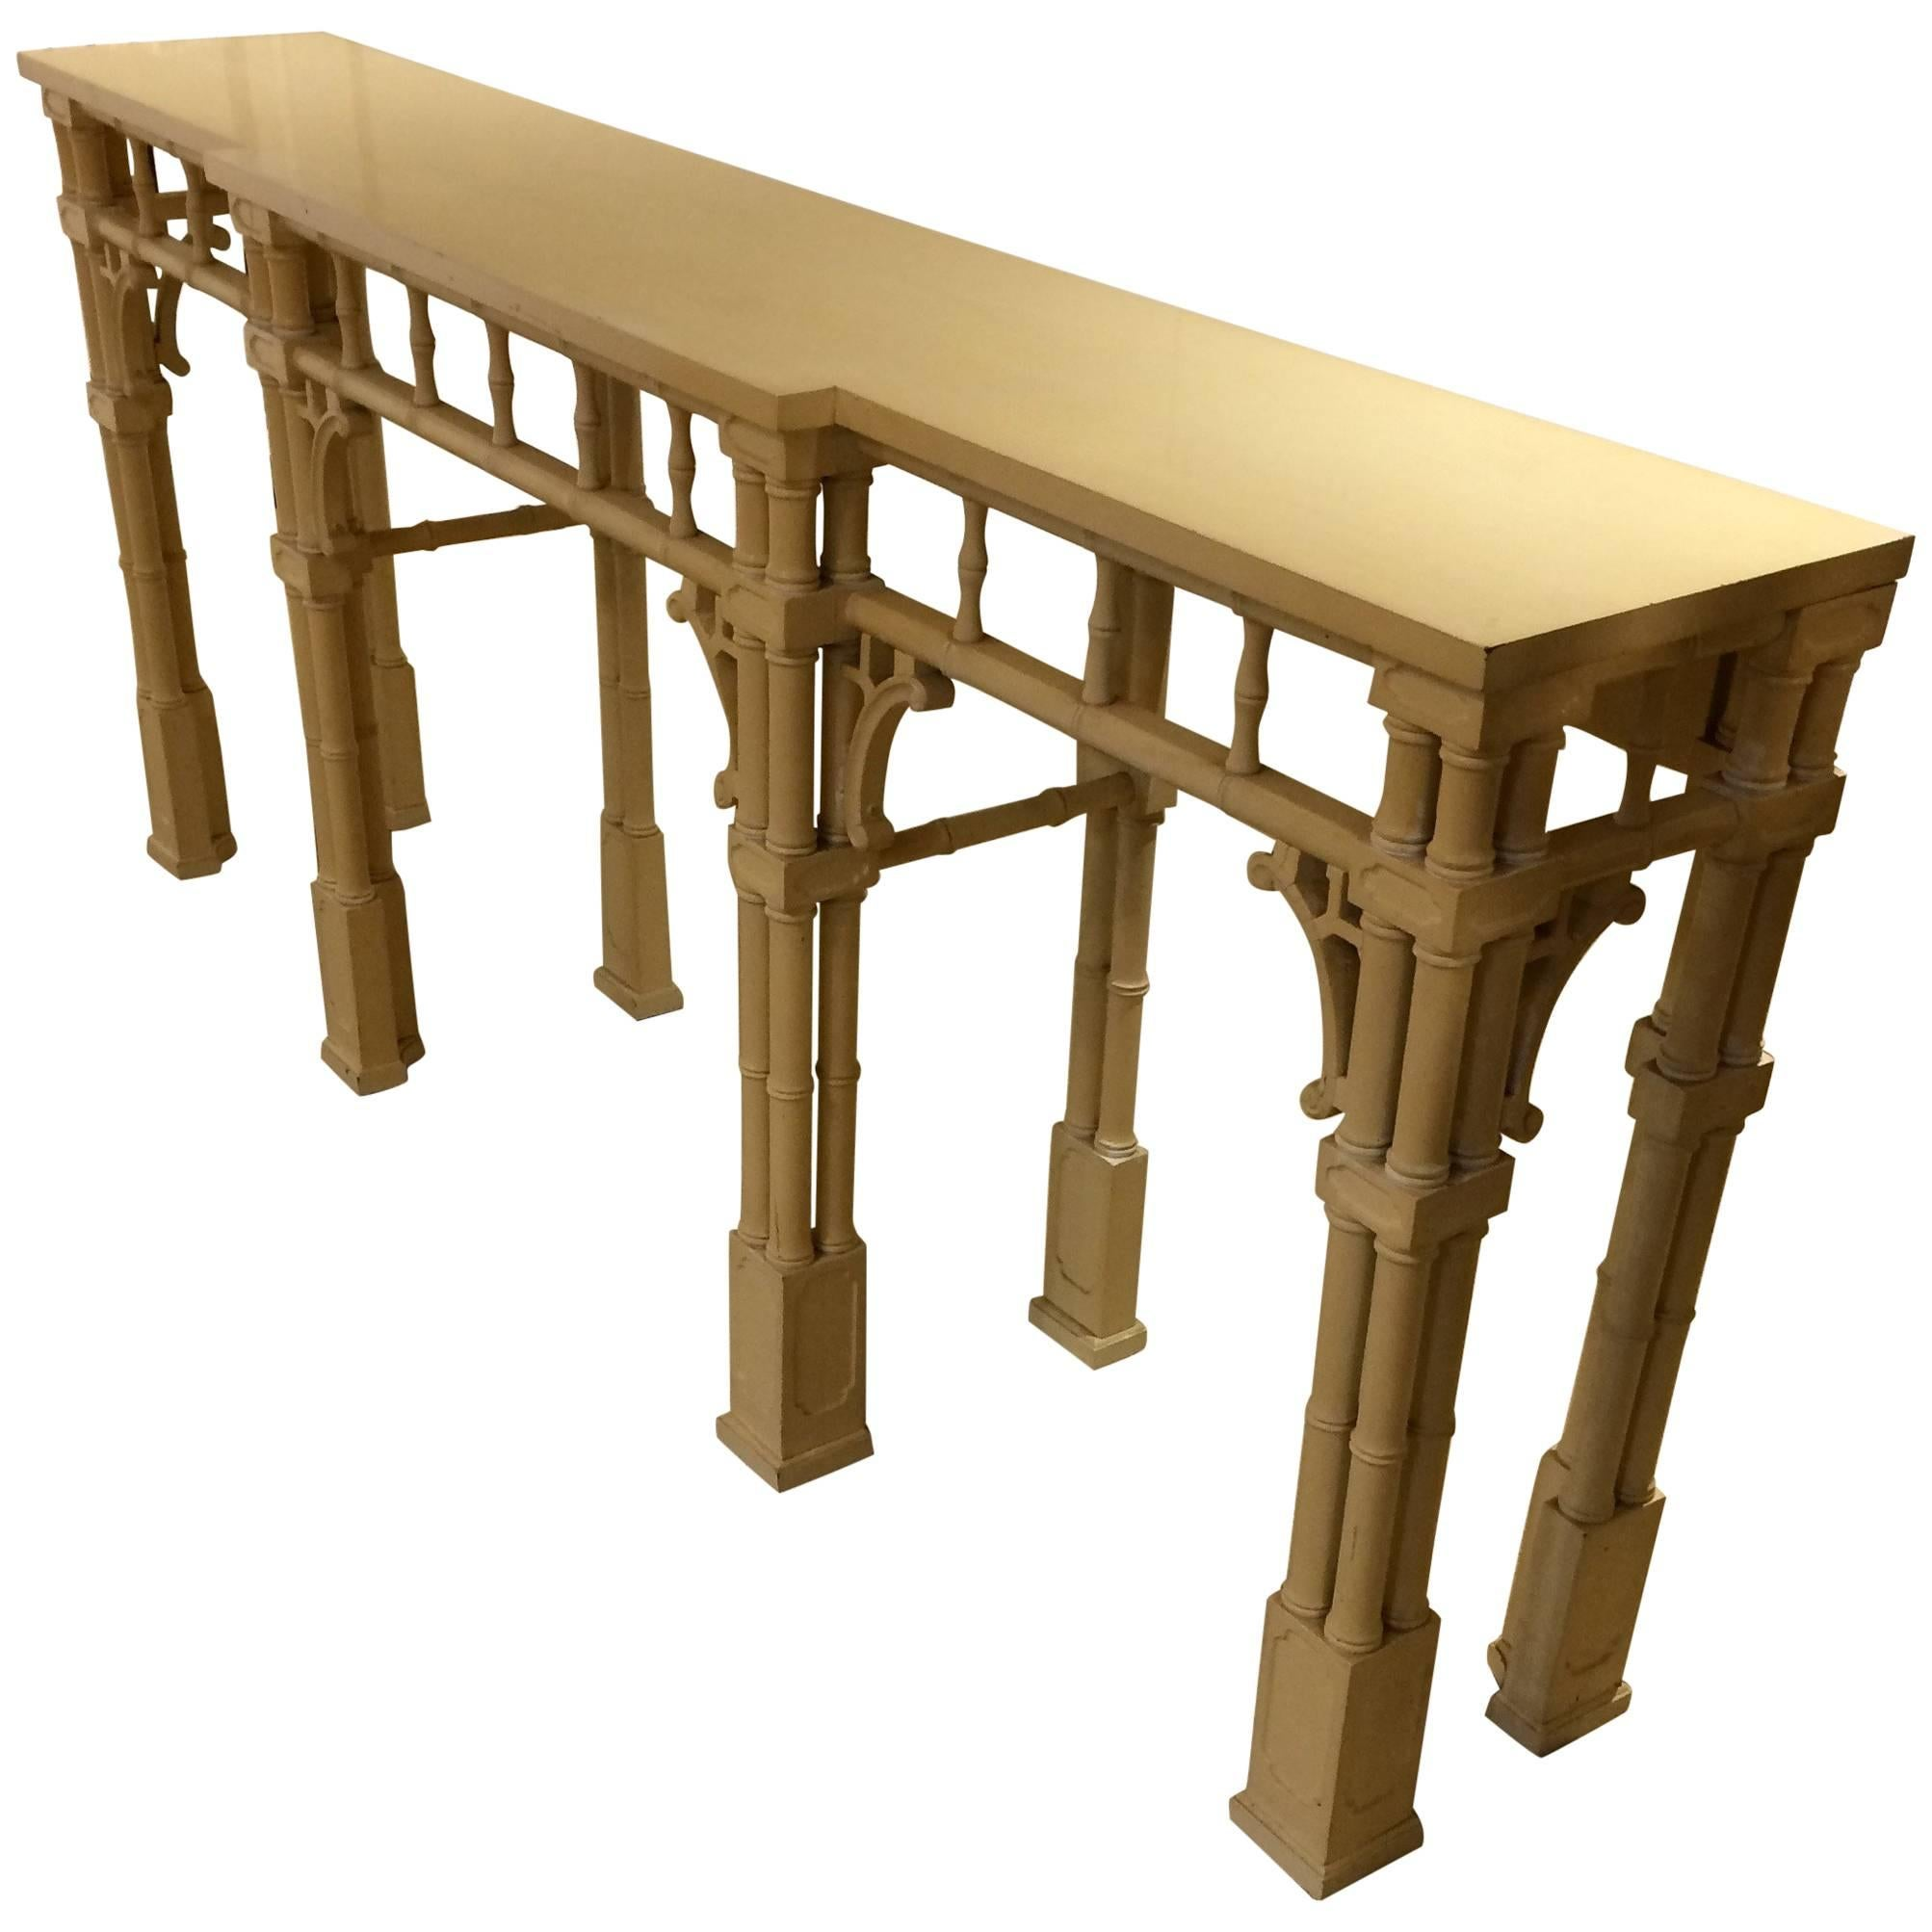 Gentil Elegant Long And Narrow Painted Faux Bamboo And Wood Console Table For Sale